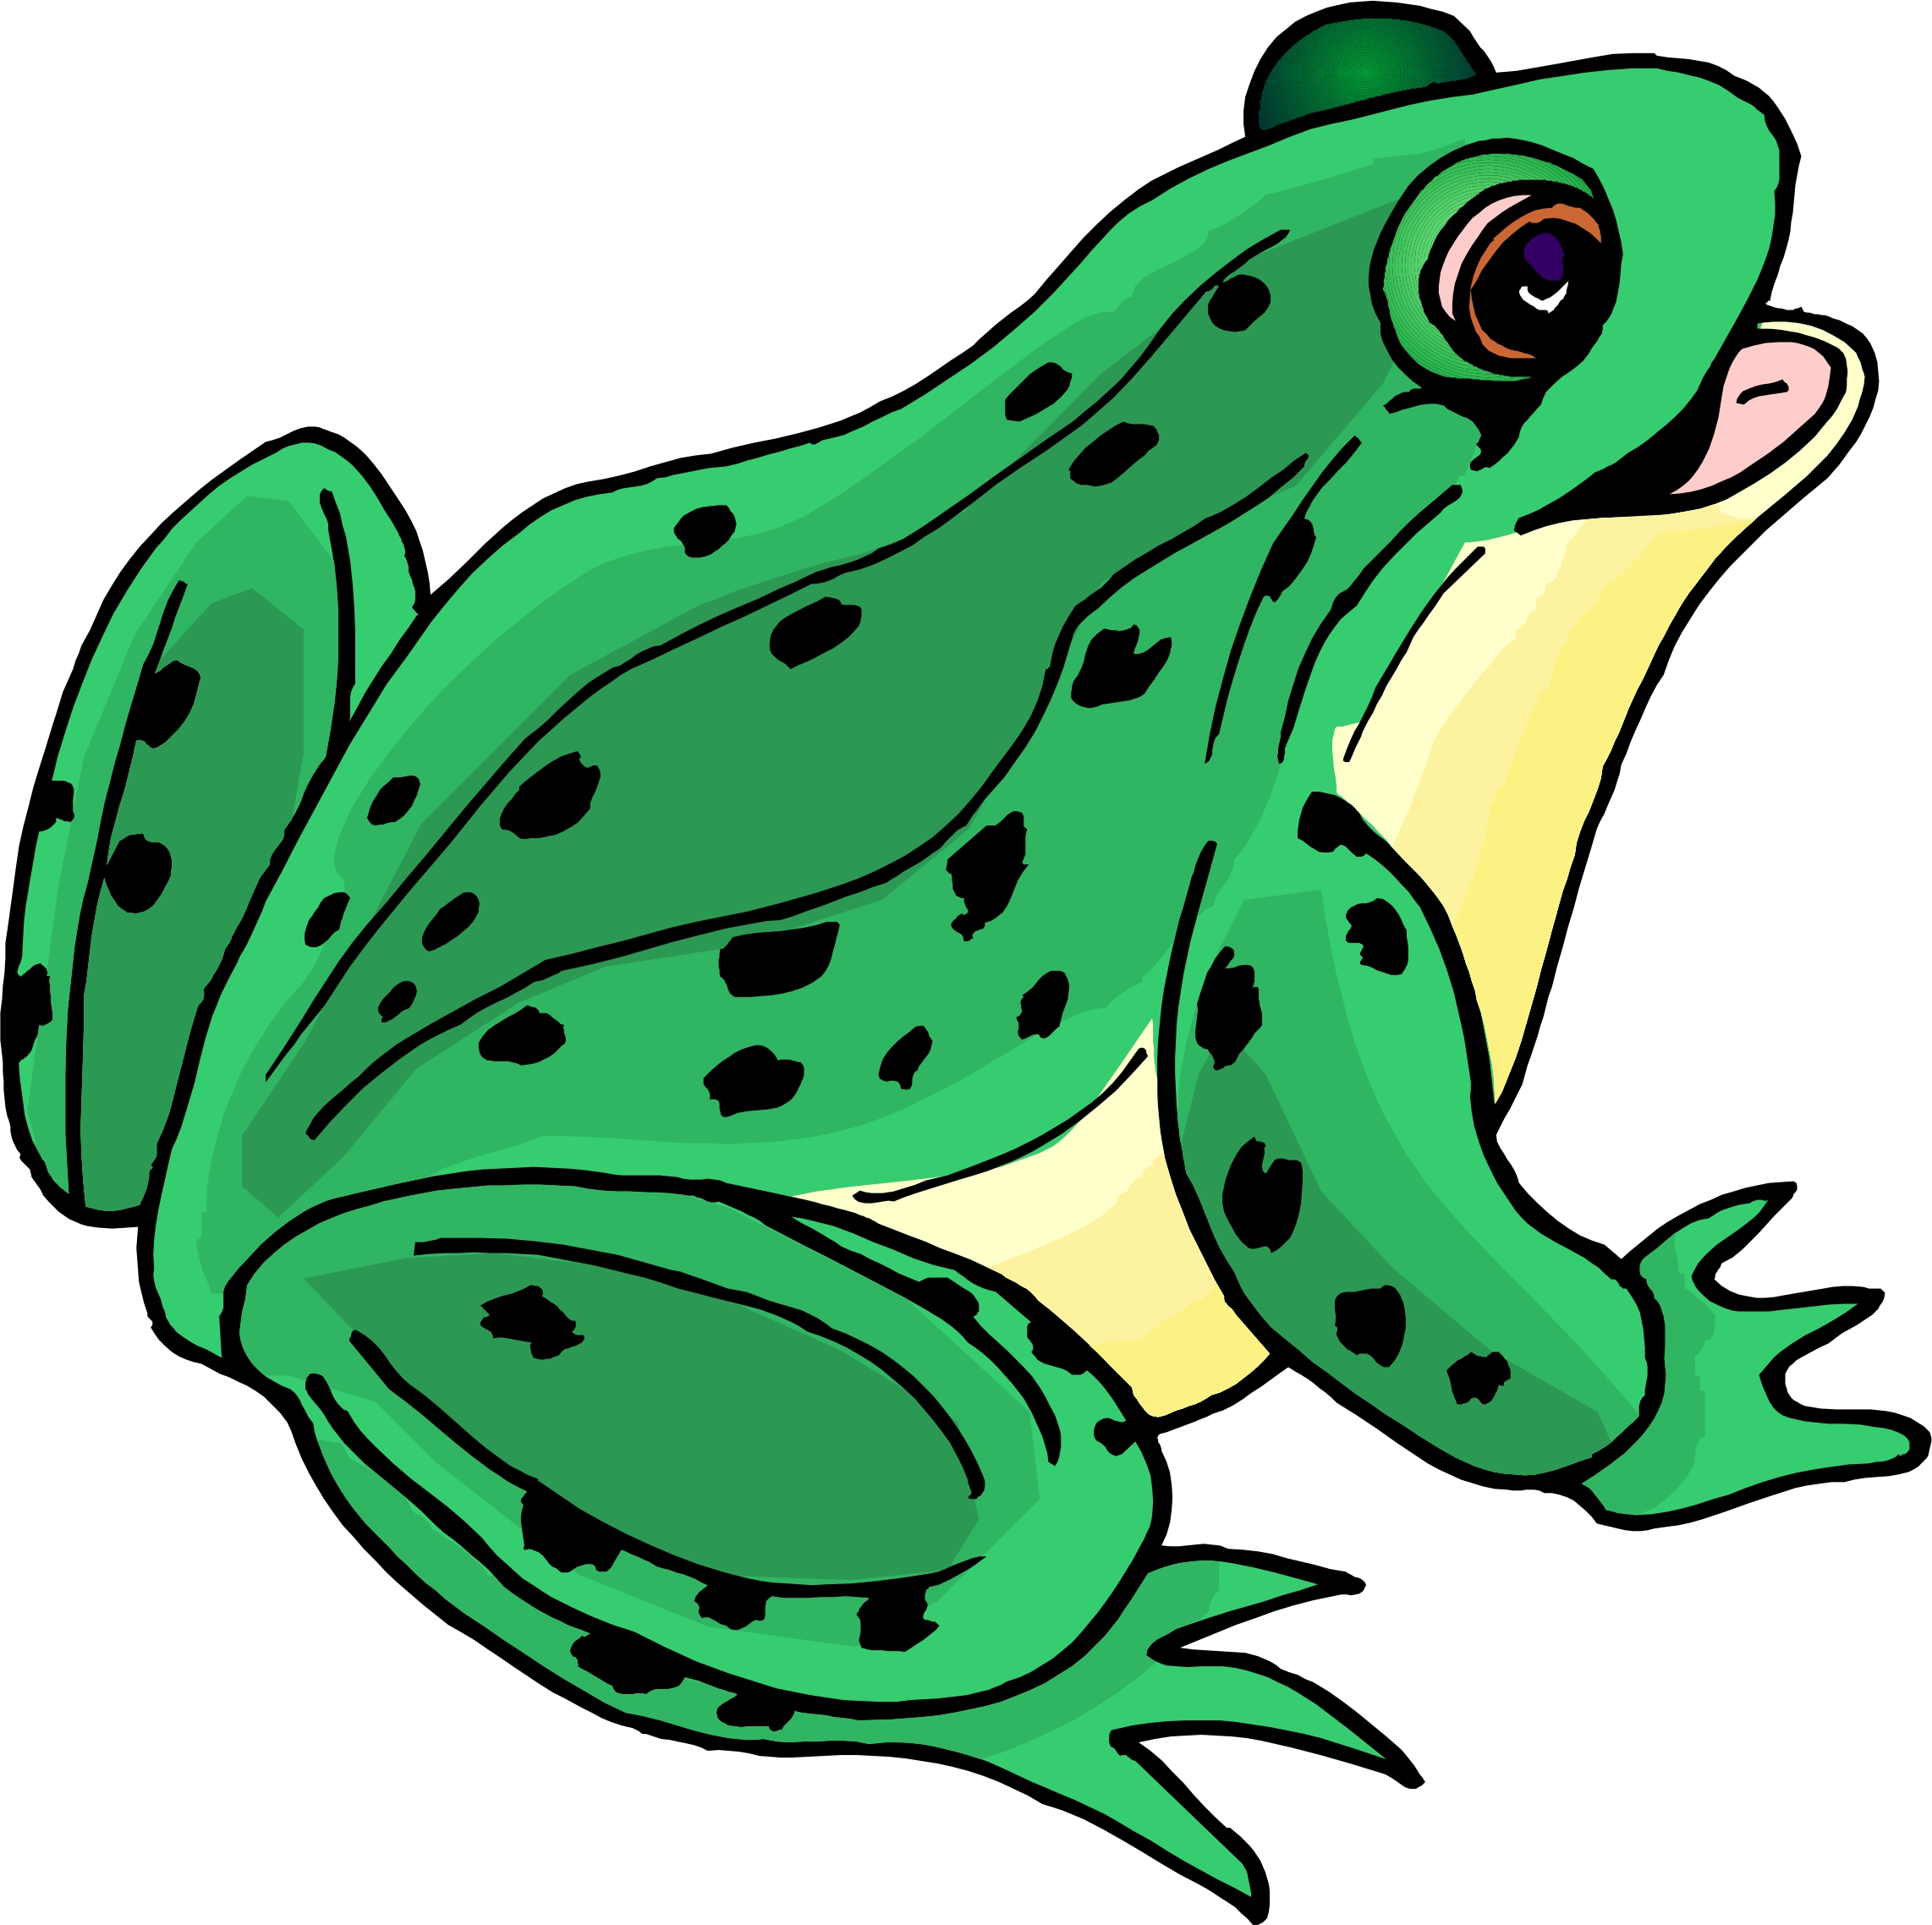 Frogs clipart green frog. Girl back to cartoon